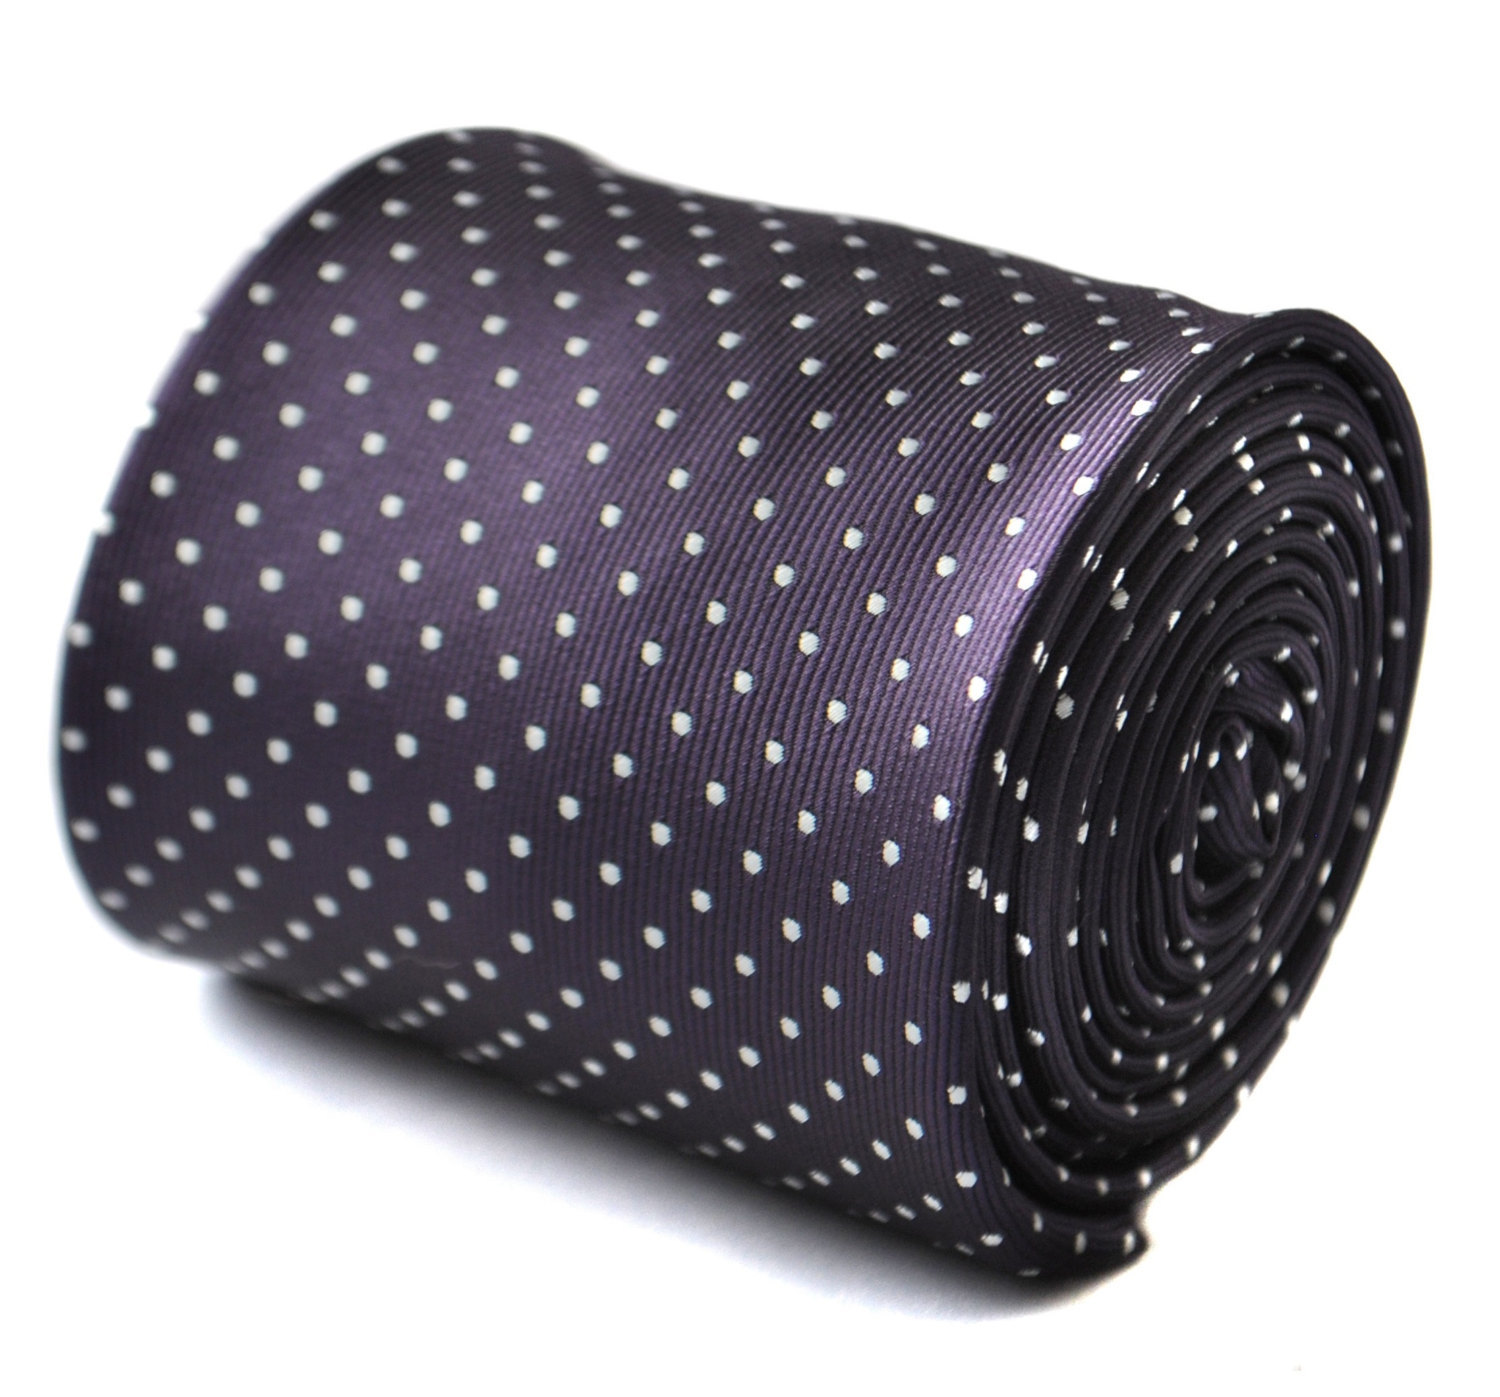 Dark purple and white pin spot tie with signature floral design to the rear by F